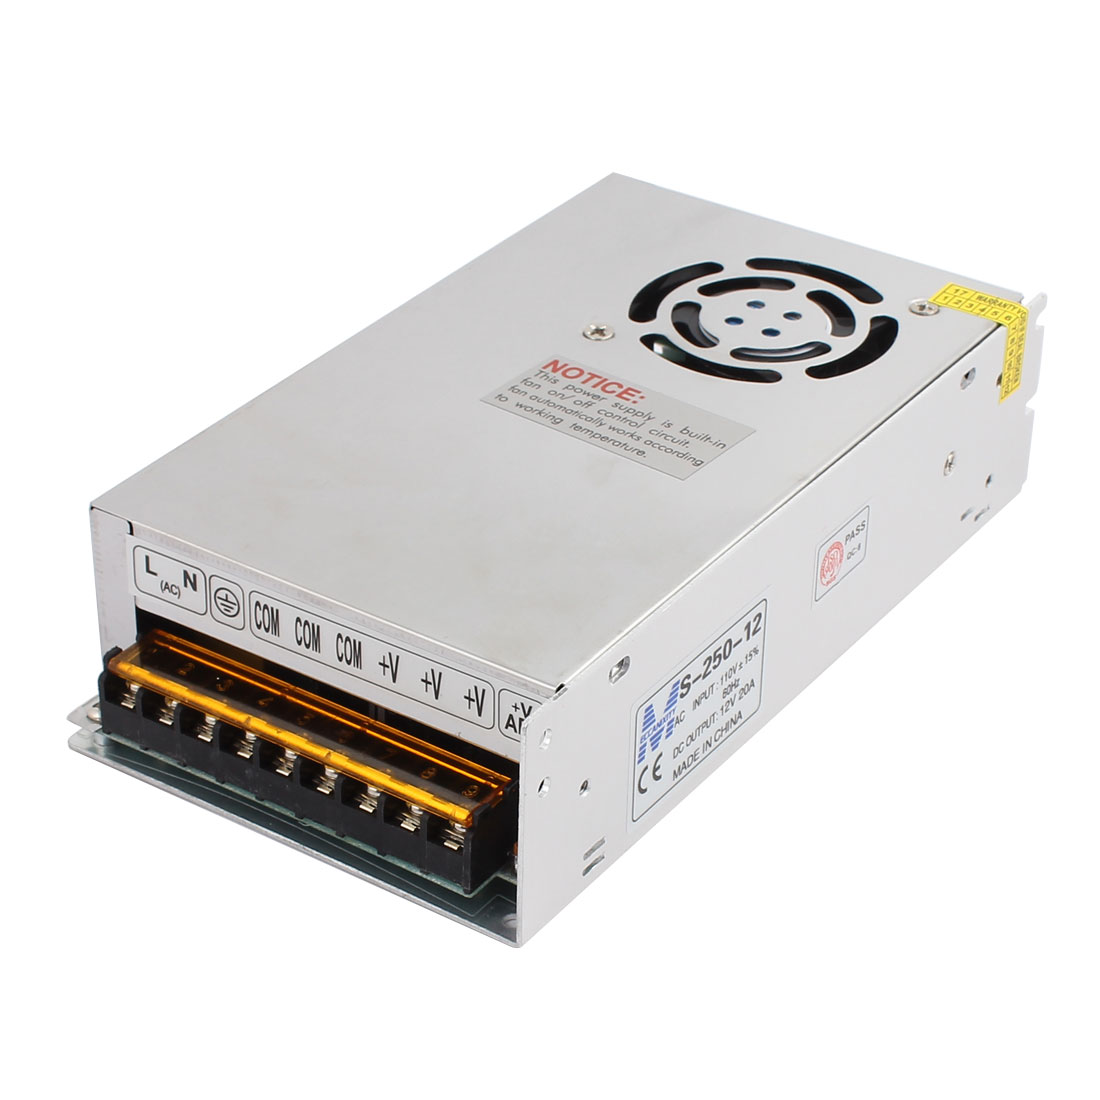 AC 110/220V DC 12V 20A 240W Double Output Switch Power Supply Driver for LED Strip Light